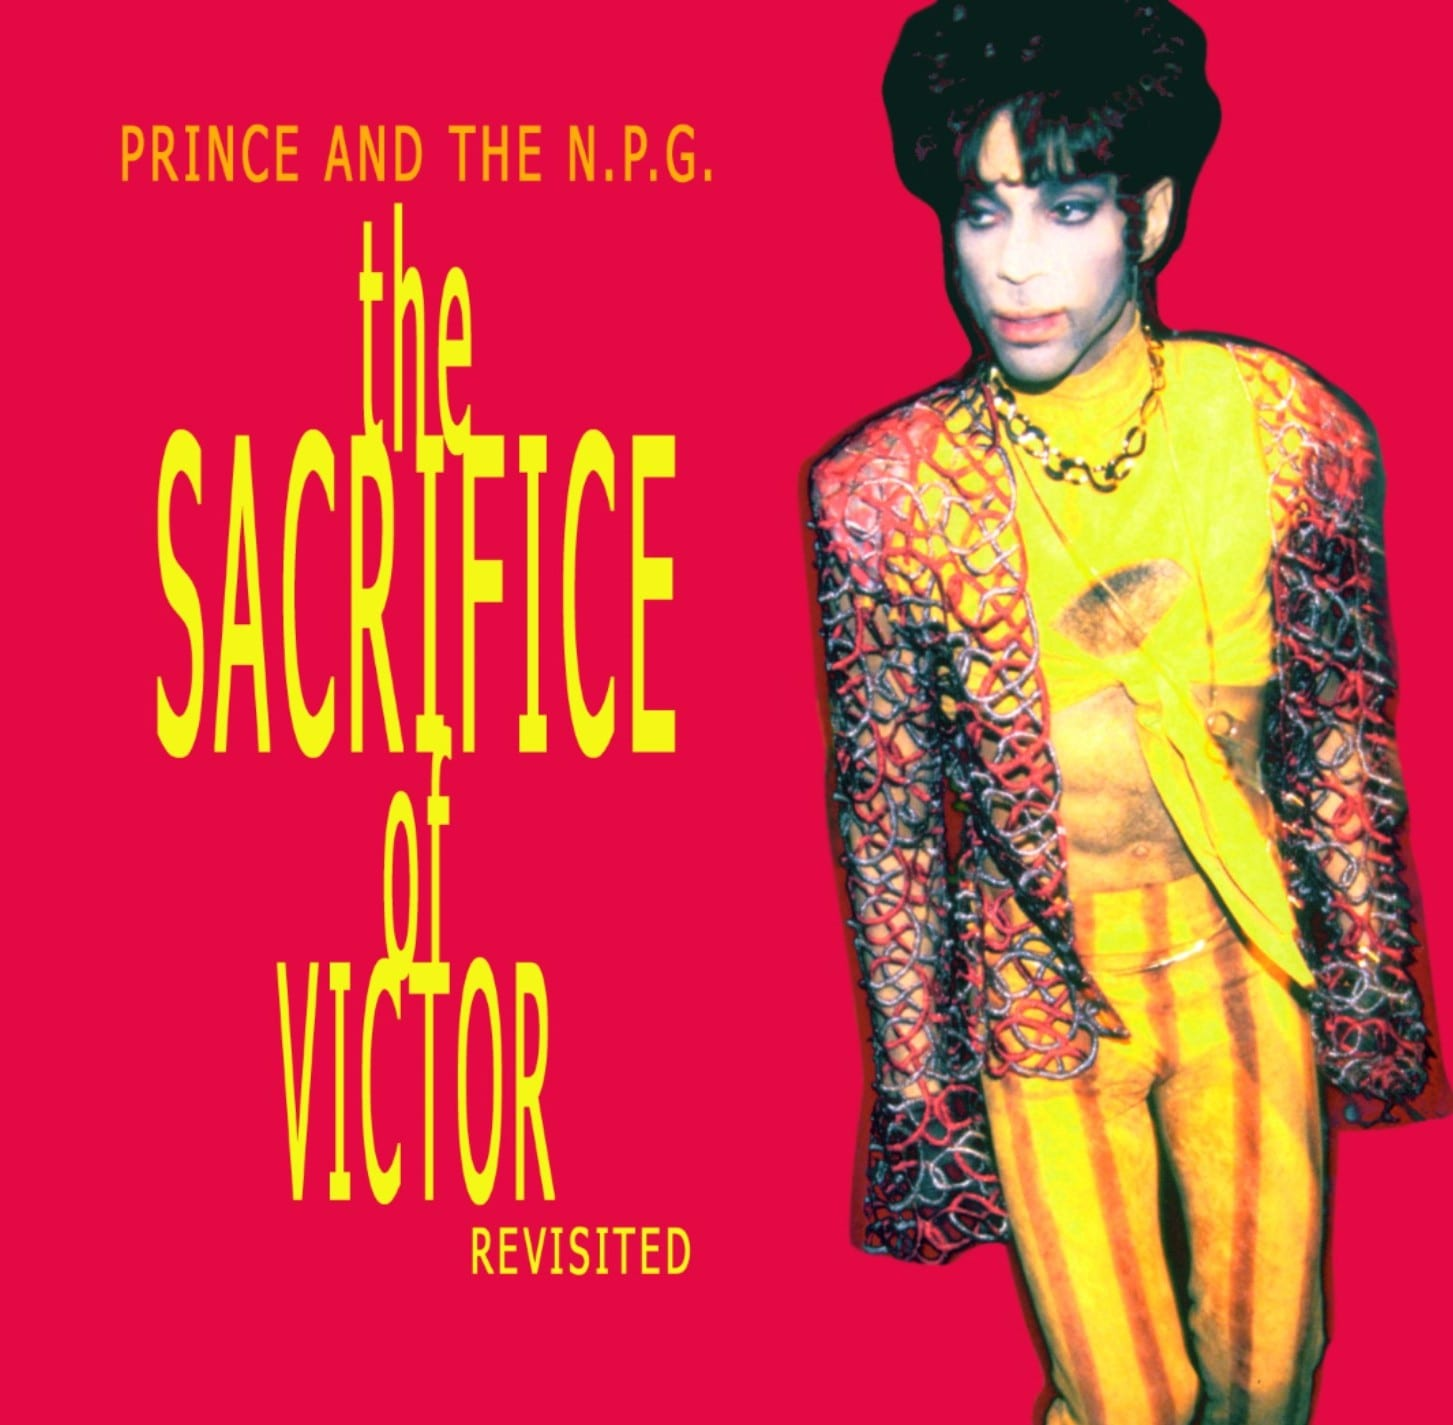 Prince - The Sacrifice Of Victor Revisited (1993) CD 9